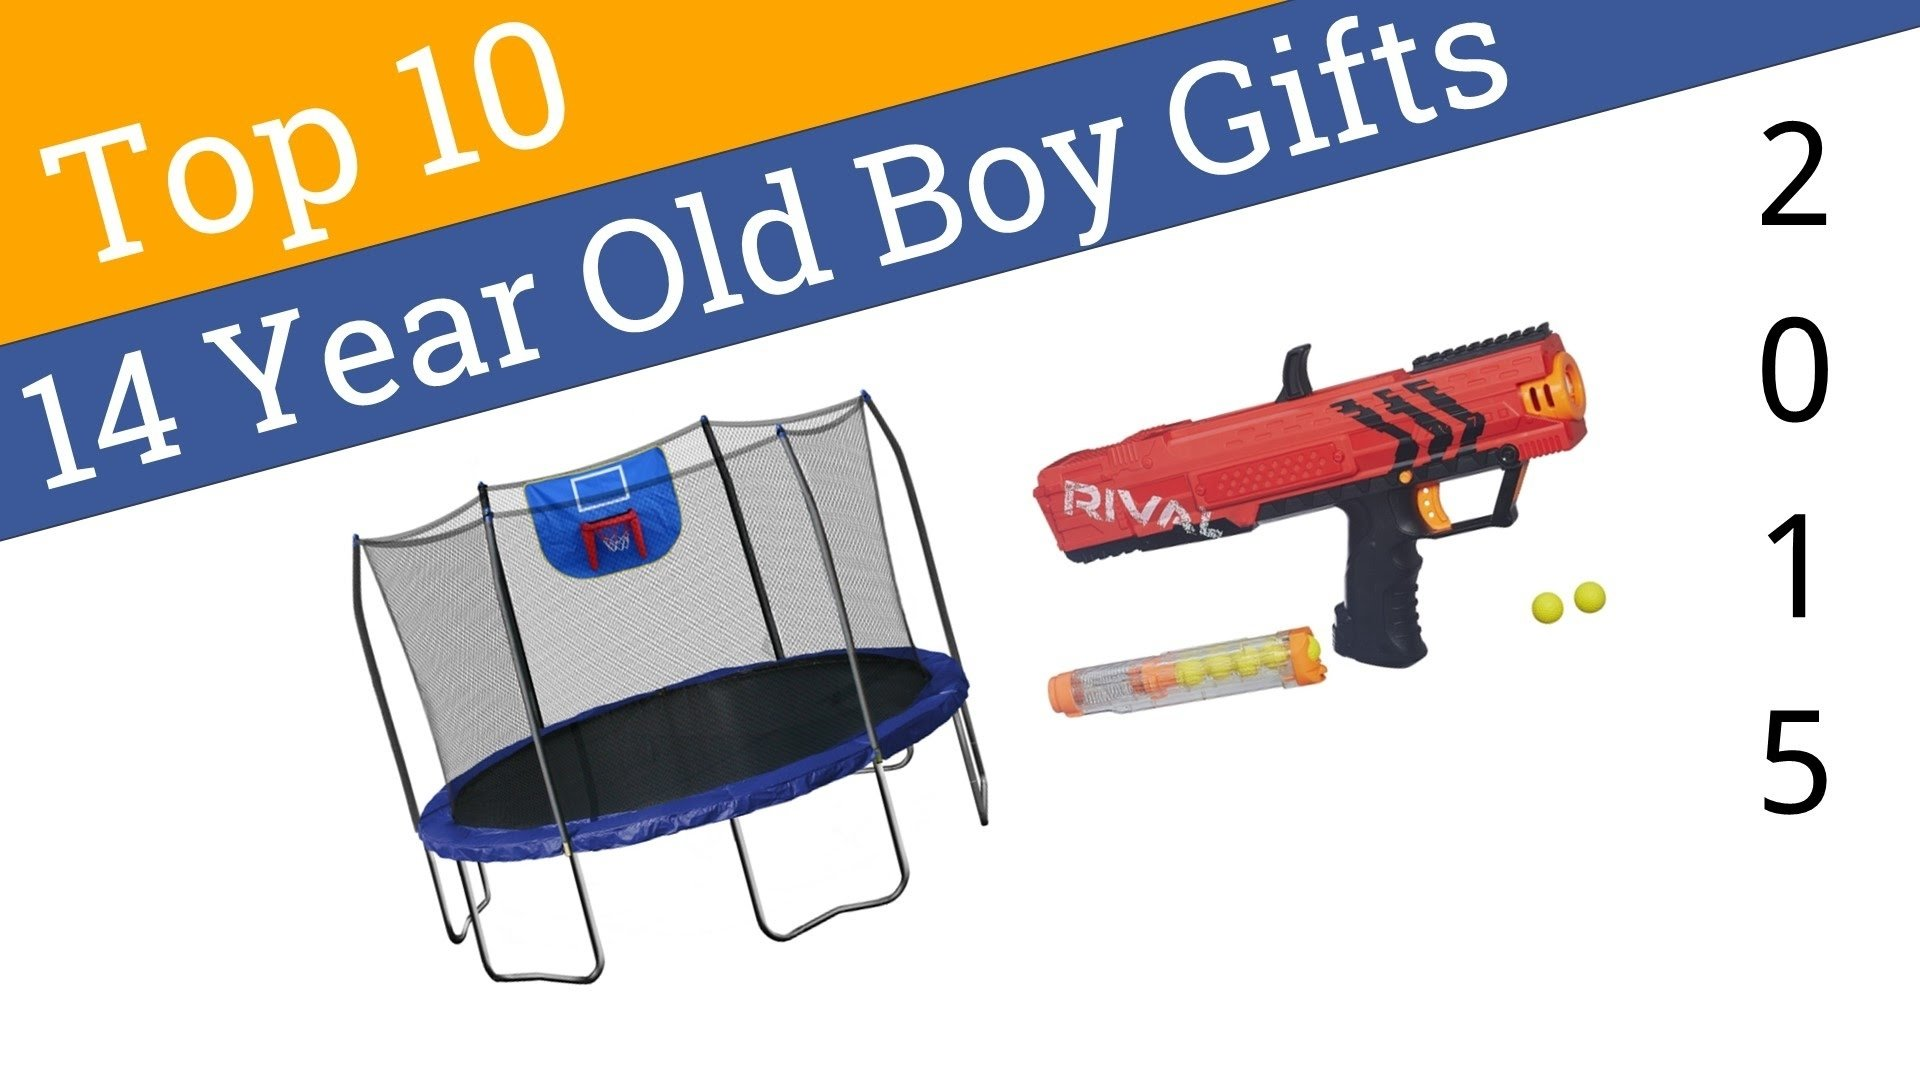 10 Unique Christmas Gift Ideas For 14 Year Old Boys 10 best 14 year old boy gifts 2015 youtube 2 2020